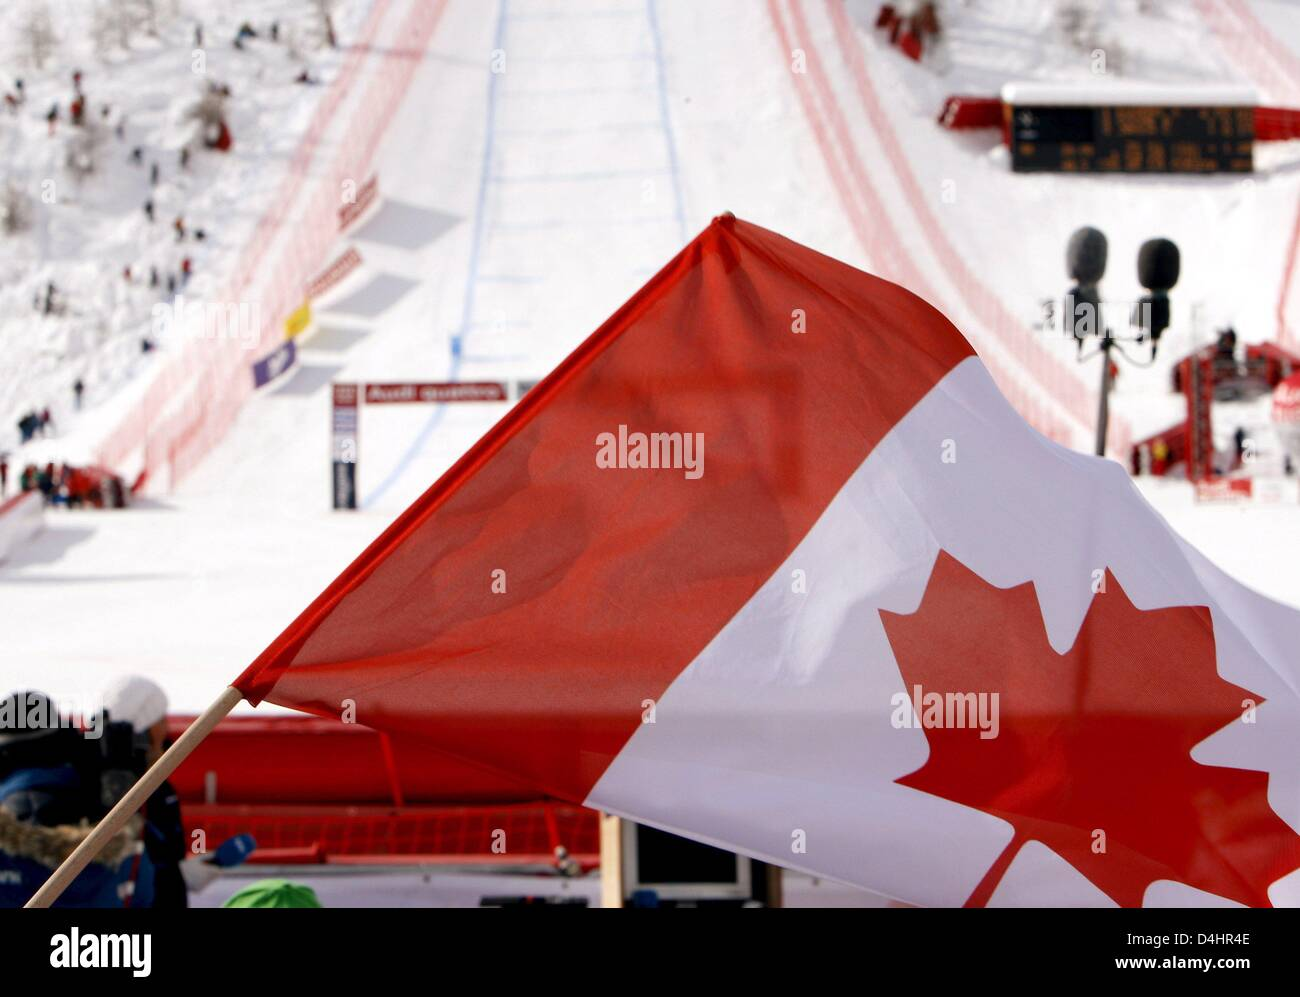 A Canadian flag is waved in the finish area during the Men?s Downhill competition at the Alpine Skiing World Championships - Stock Image